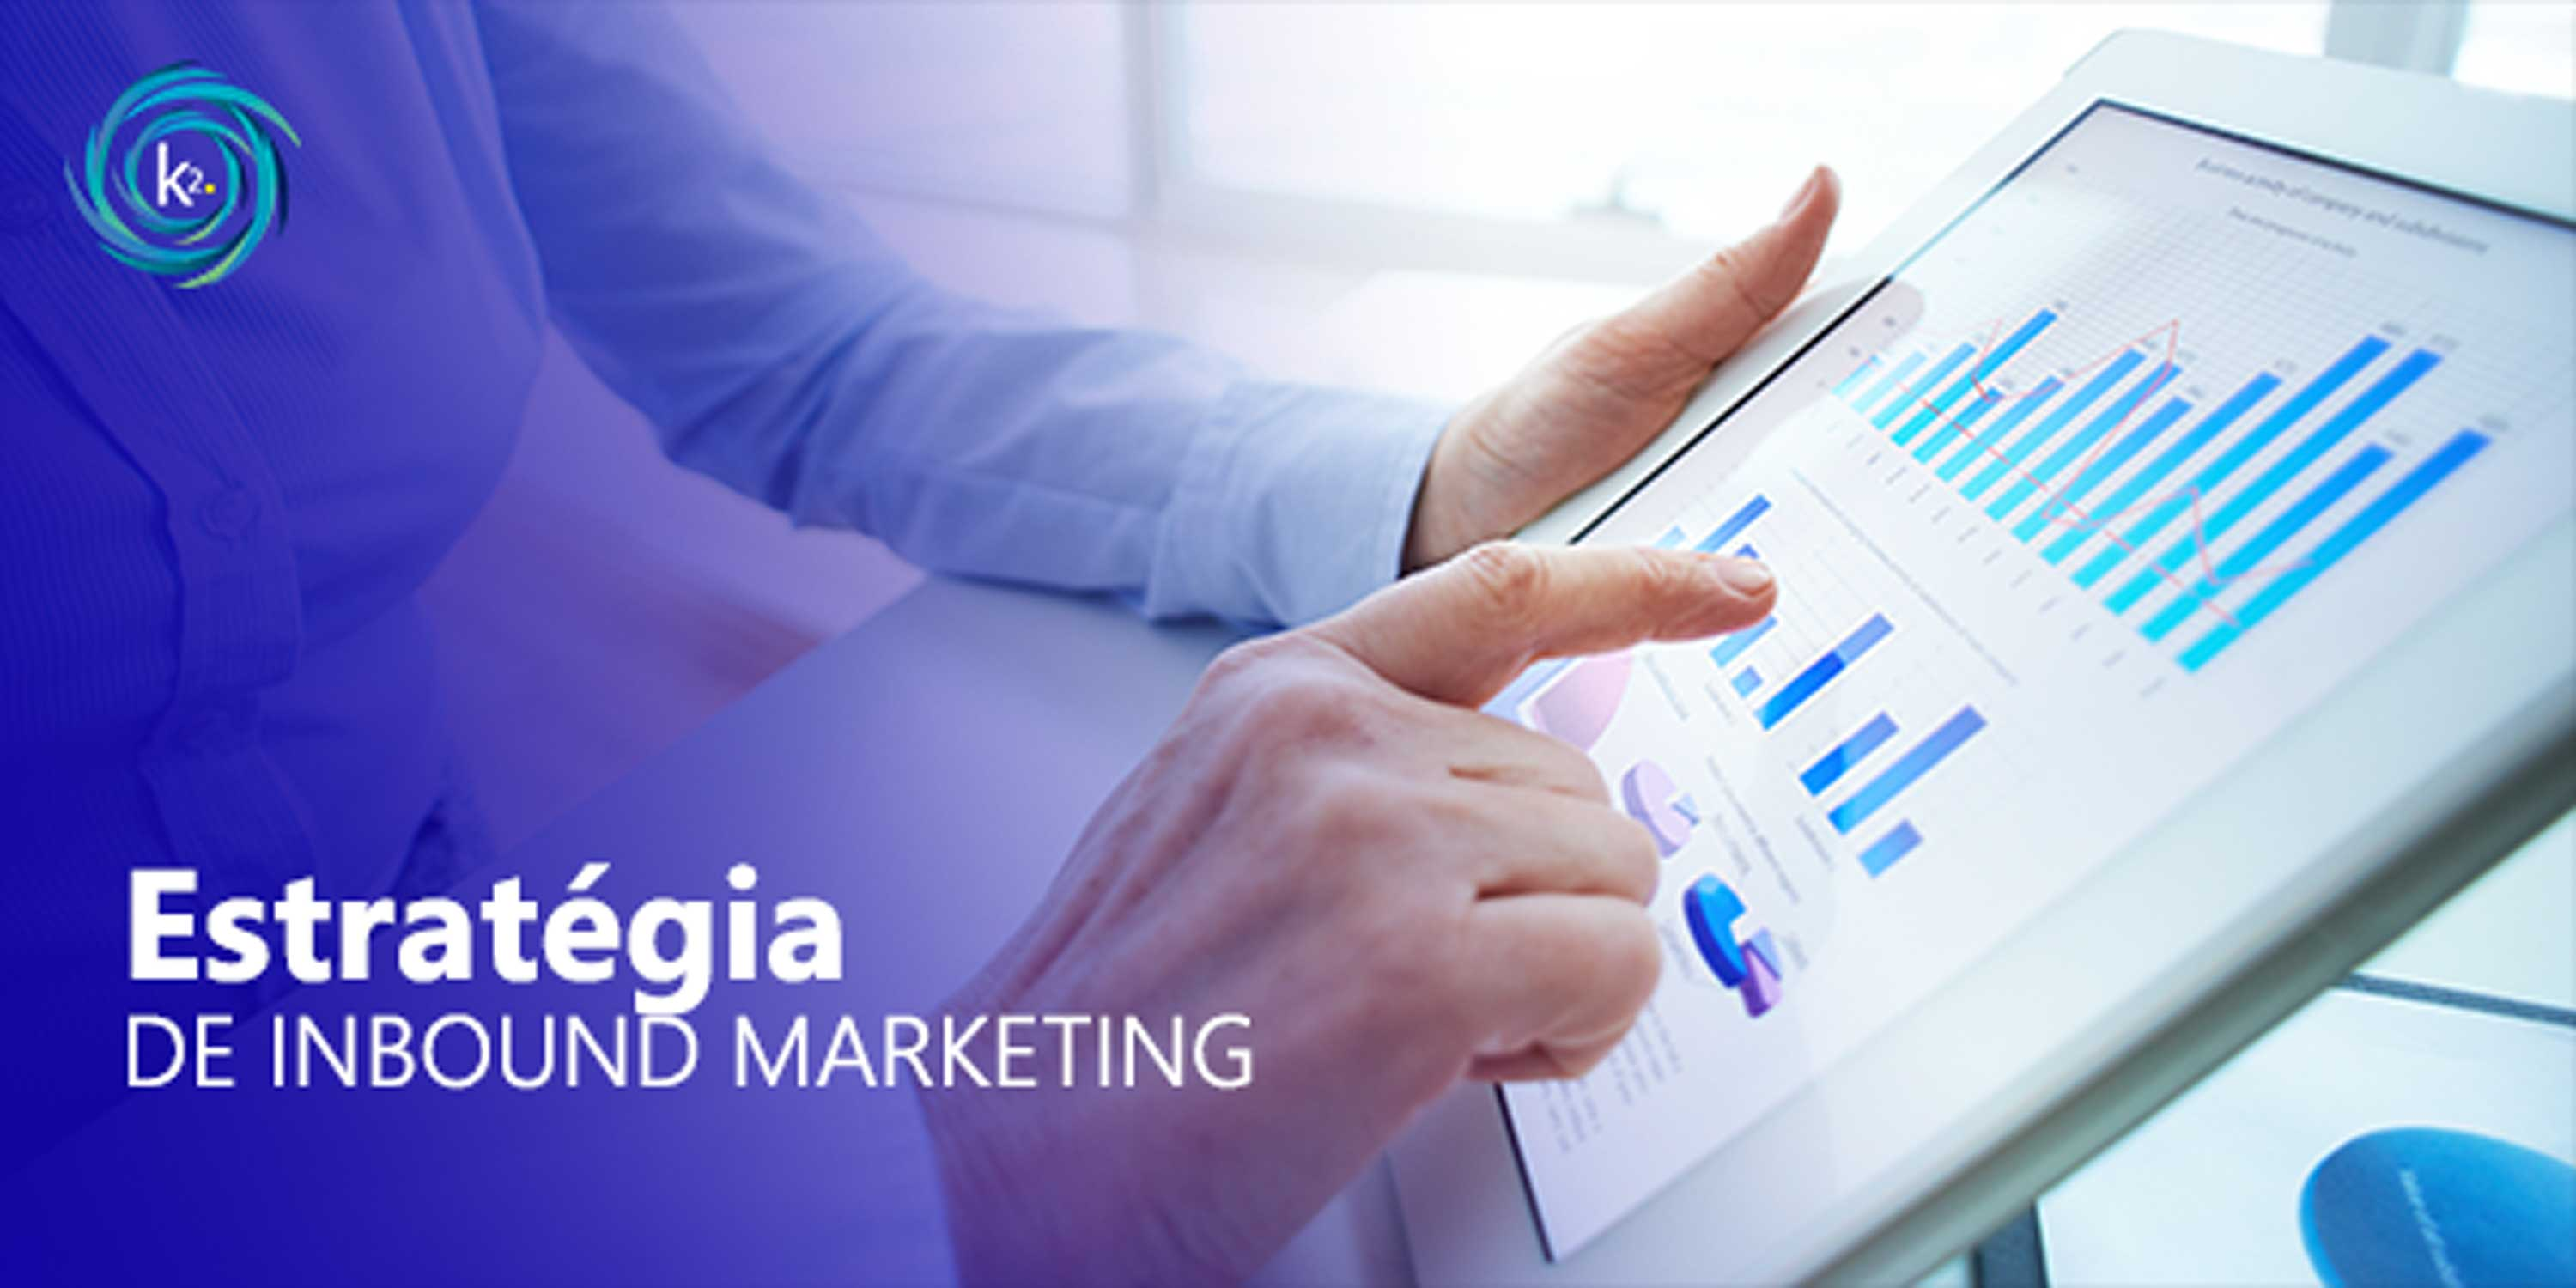 estratégia de inbound marketing